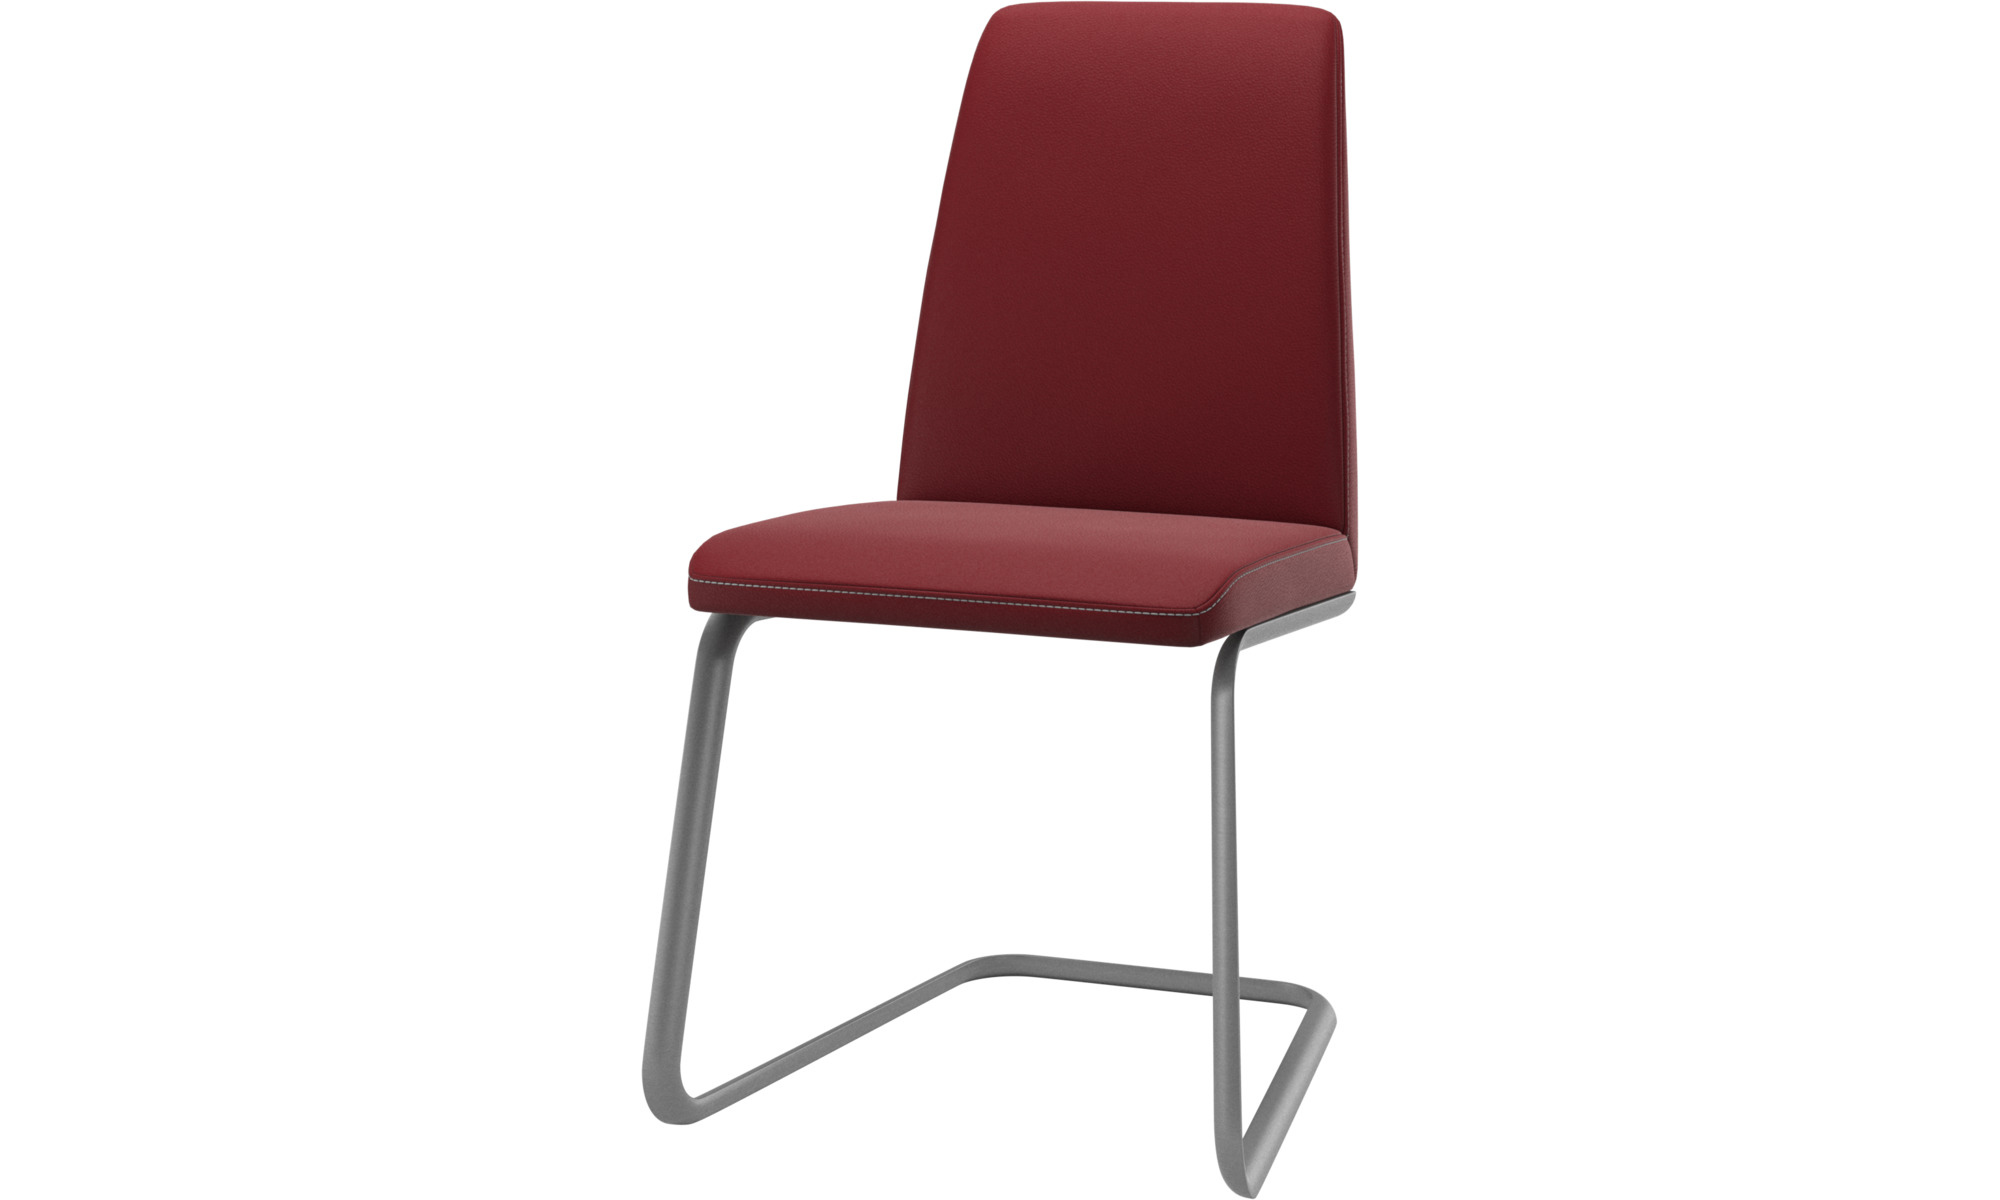 Dining chairs - Lausanne chair - Red - Leather